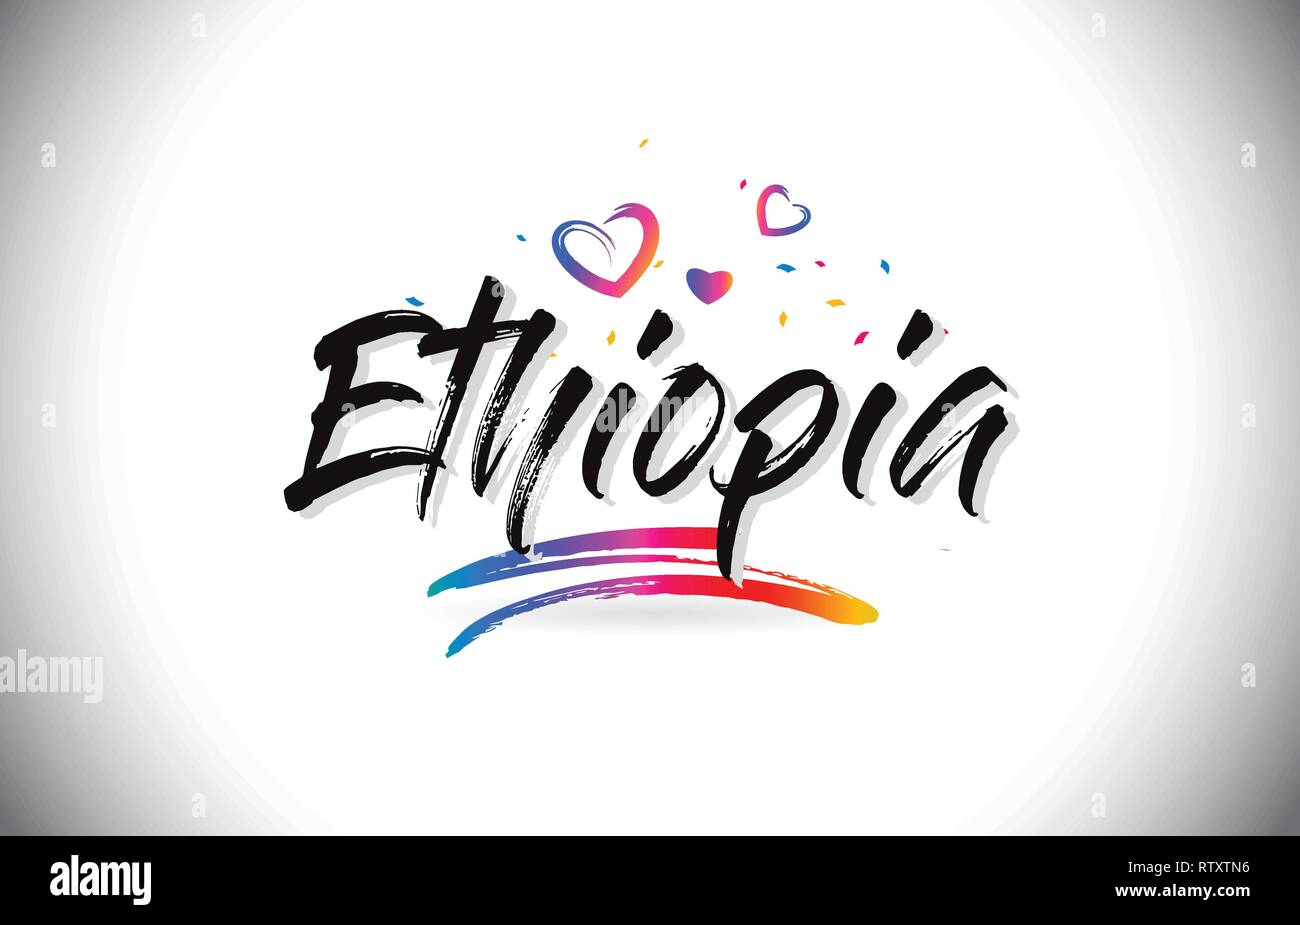 Ethiopia Welcome To Word Text with Love Hearts and Creative Handwritten Font Design Vector Illustration. - Stock Vector